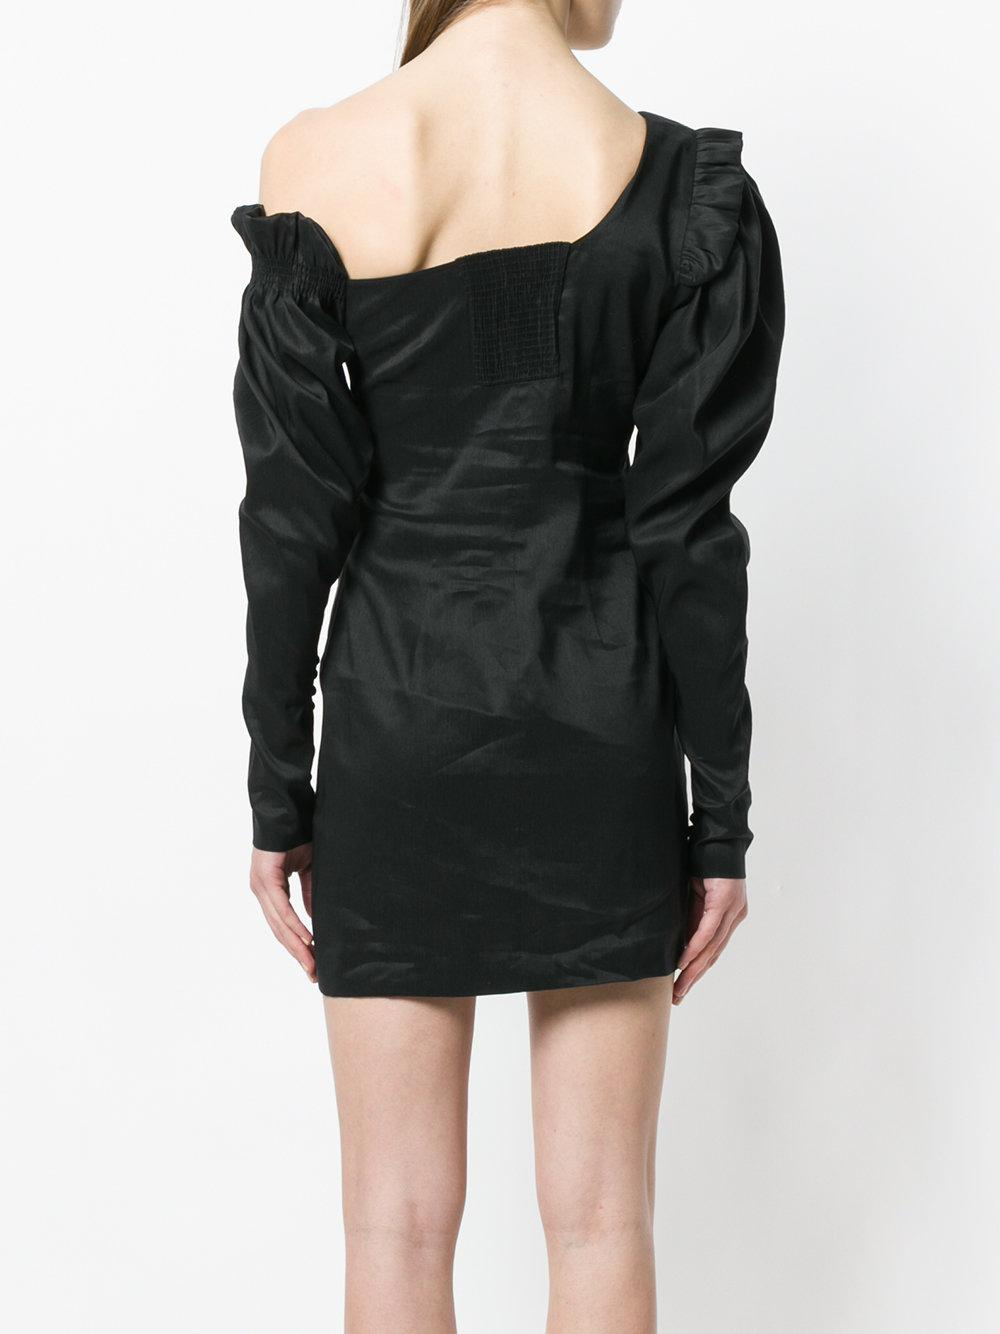 Magda Butrym Woman Ecija Faux Pearl-embellished Silk-satin Mini Dress Black Size 38 Magda Butrym Sale Outlet Discount The Cheapest Cheap Cheap Online Sale Excellent Sale For Nice QDkUw1